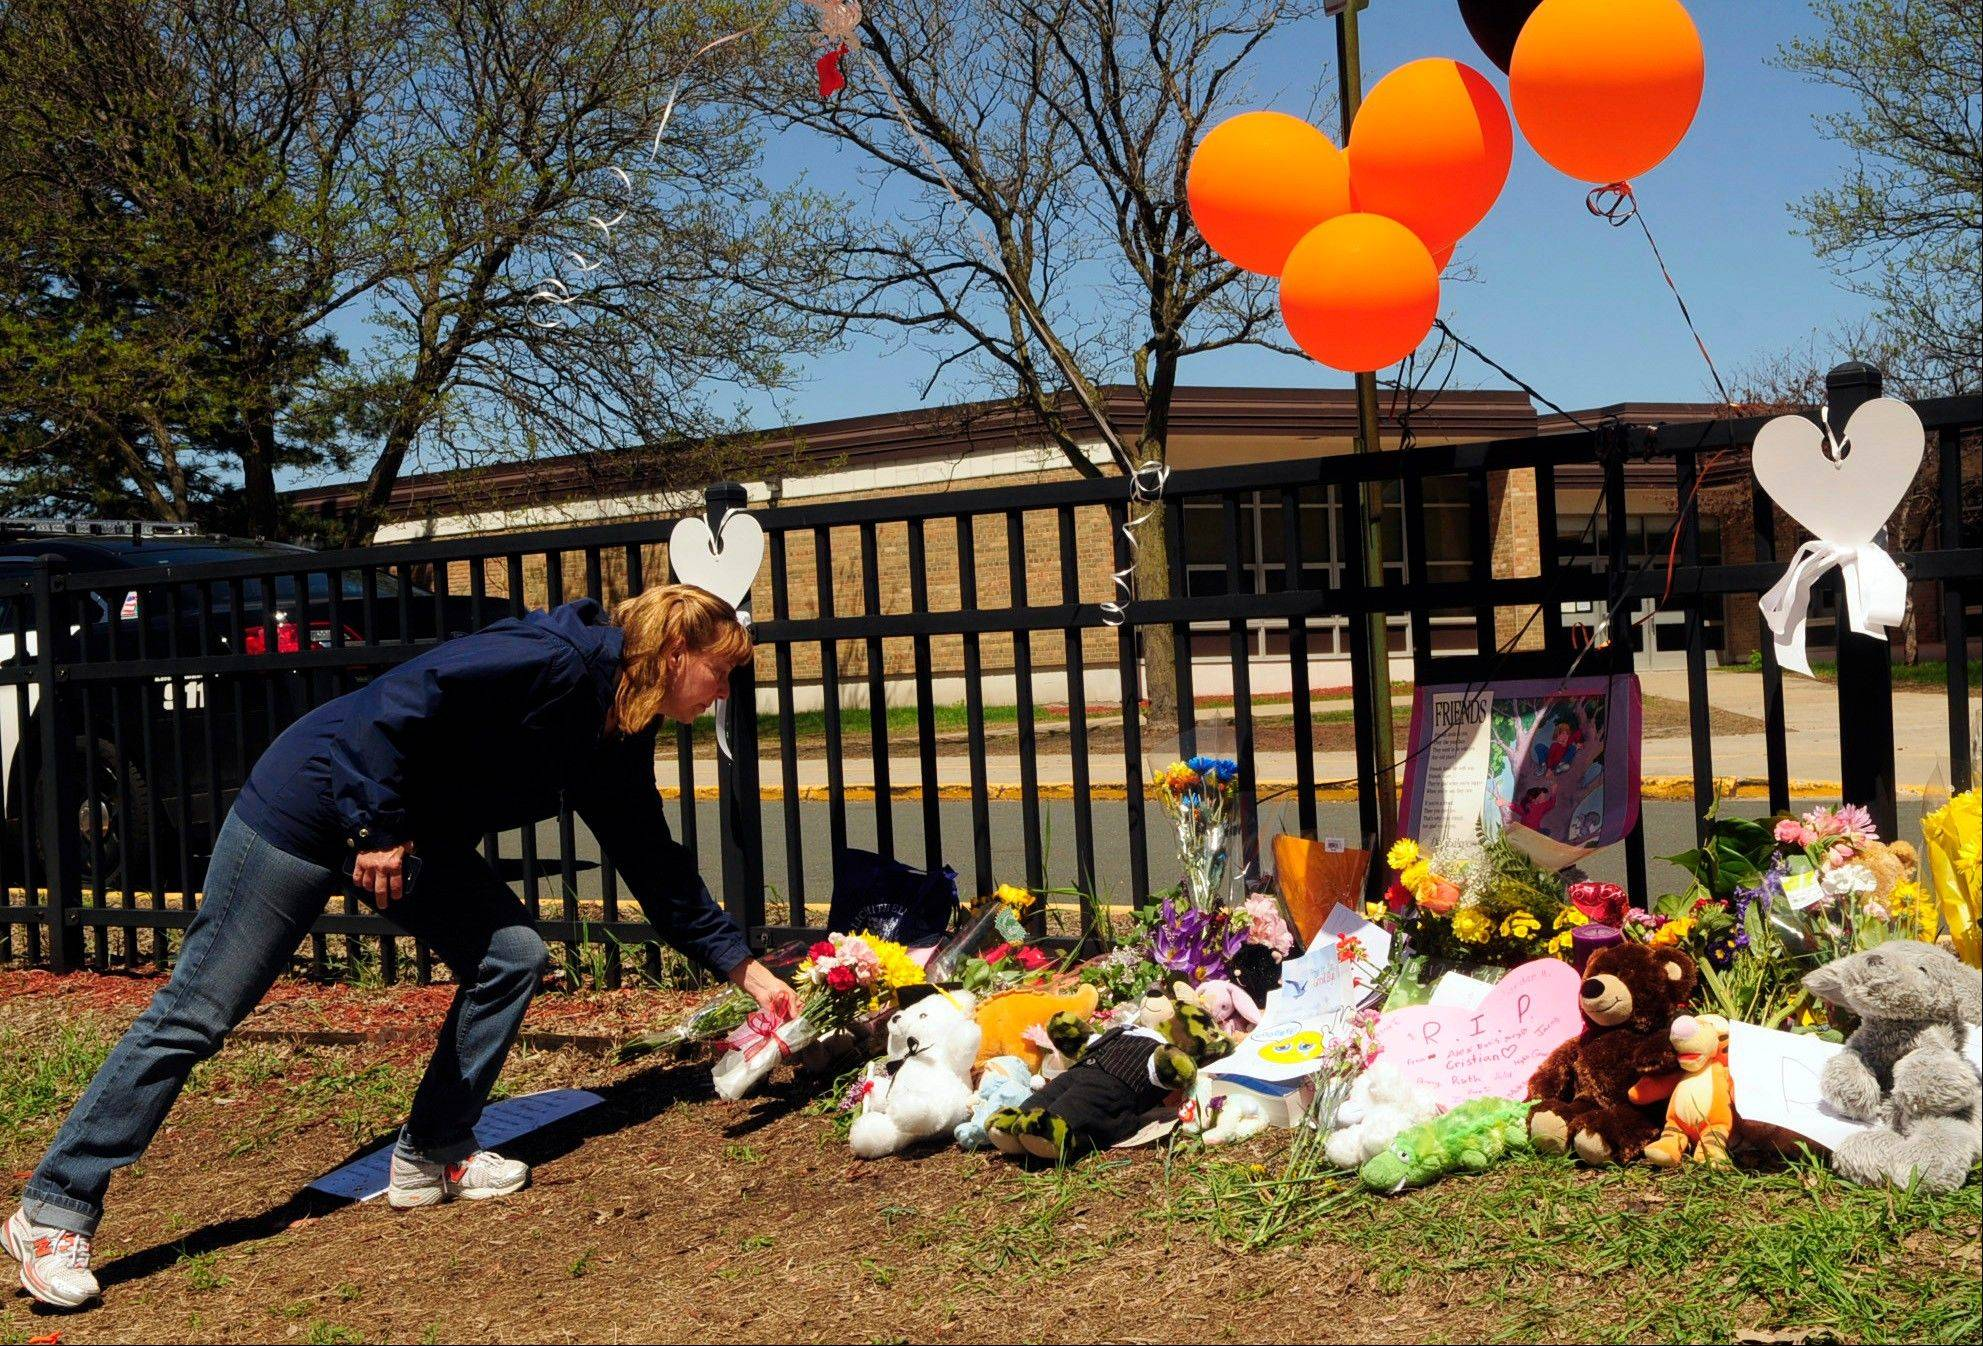 Laurie Amos of St. Louis Park, places flowers Thursday by a makeshift memorial in front of Peter Hobart Elementary School in St. Louis Park, Minn.